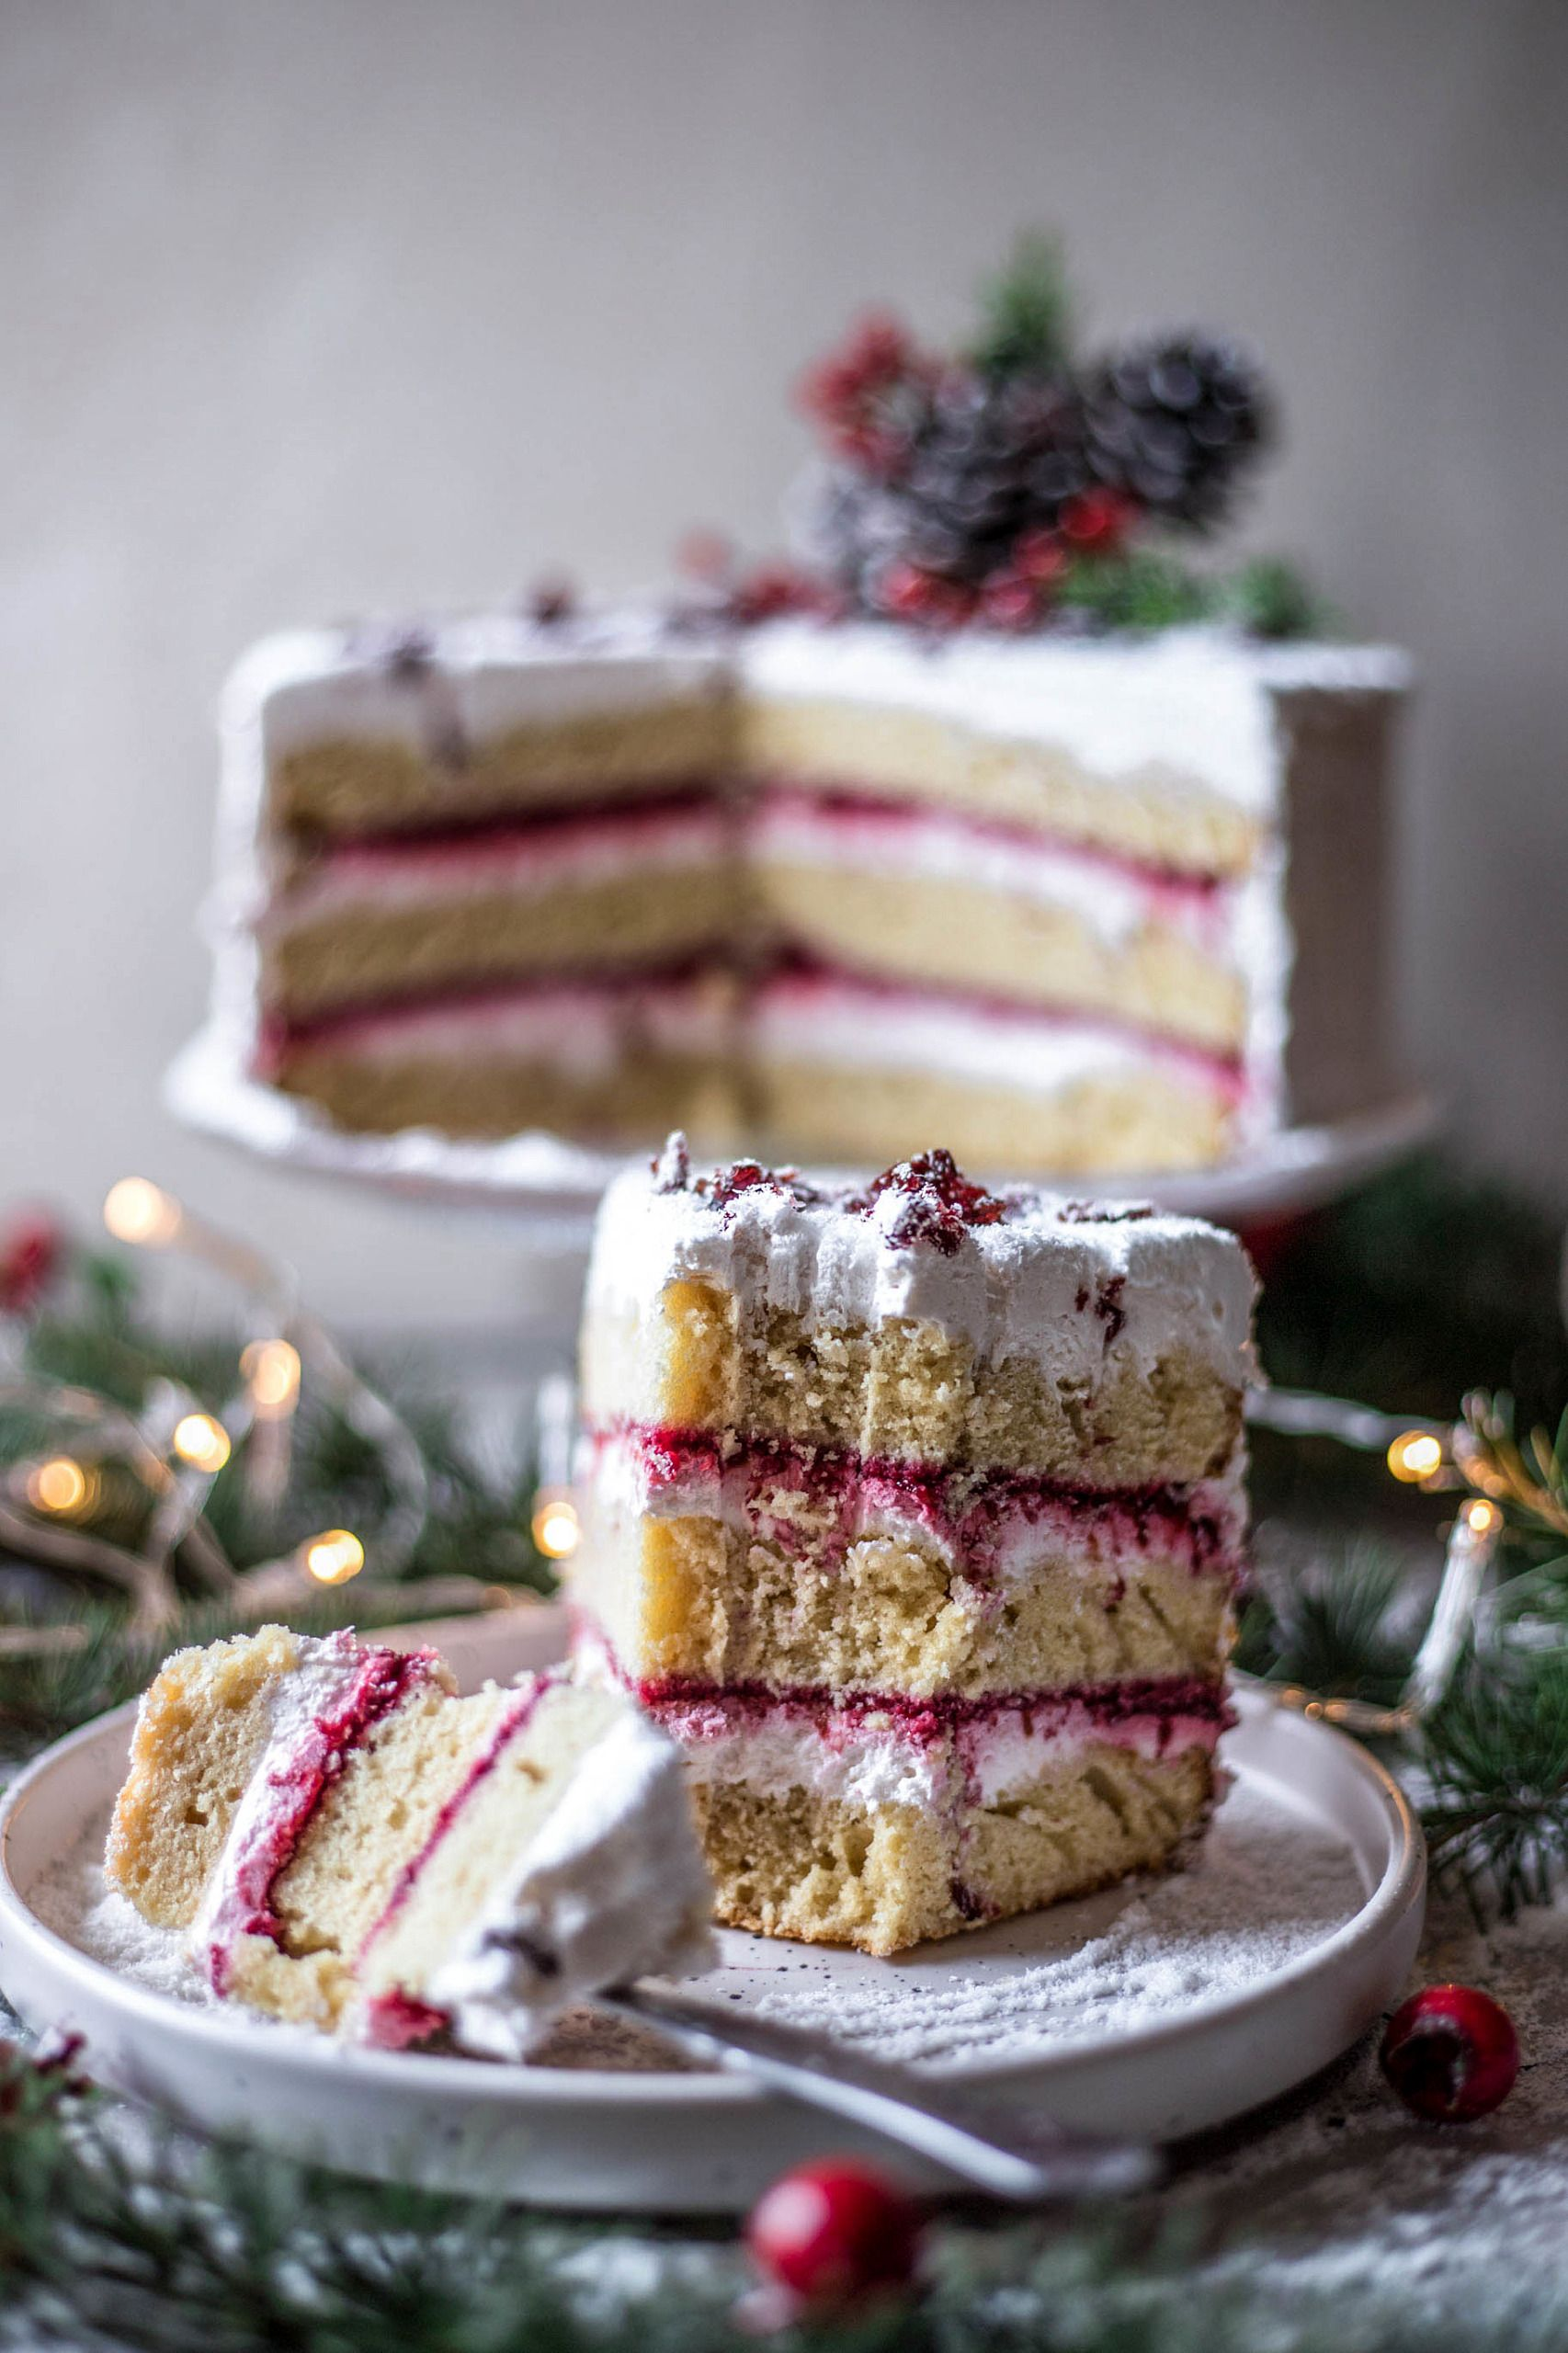 Glutenfree cranberry cake with cream cheese frosting